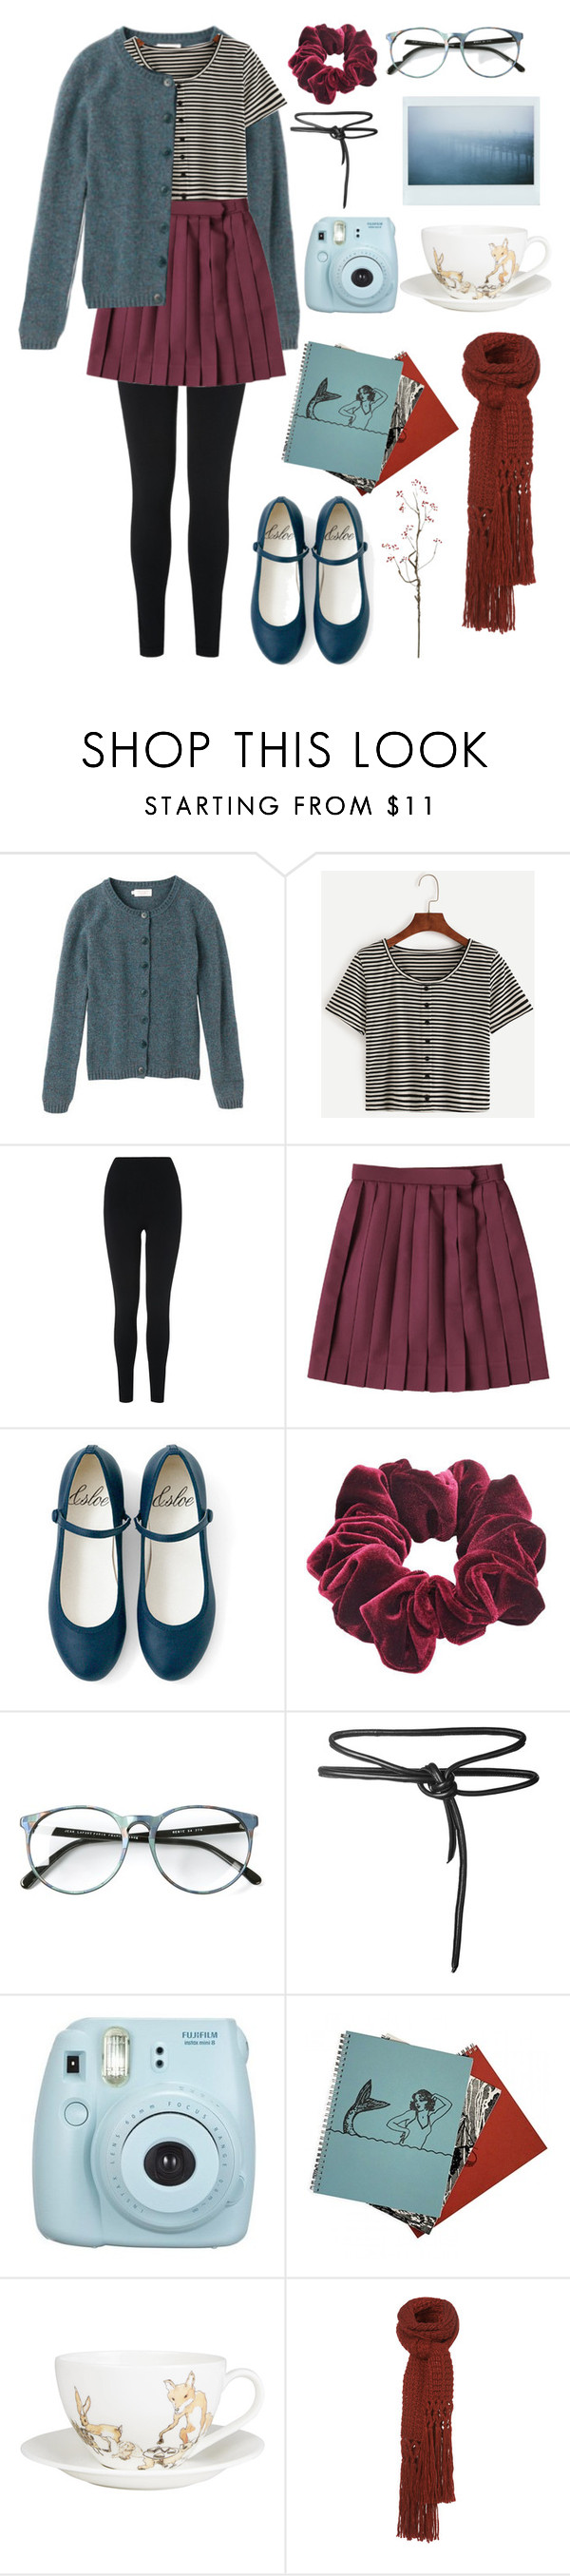 """""""Untitled #95"""" by chickensoup456 ❤ liked on Polyvore featuring Toast, L.K.Bennett, Wild Pair, Leka, Fujifilm, Mellor Ware and Crate and Barrel"""